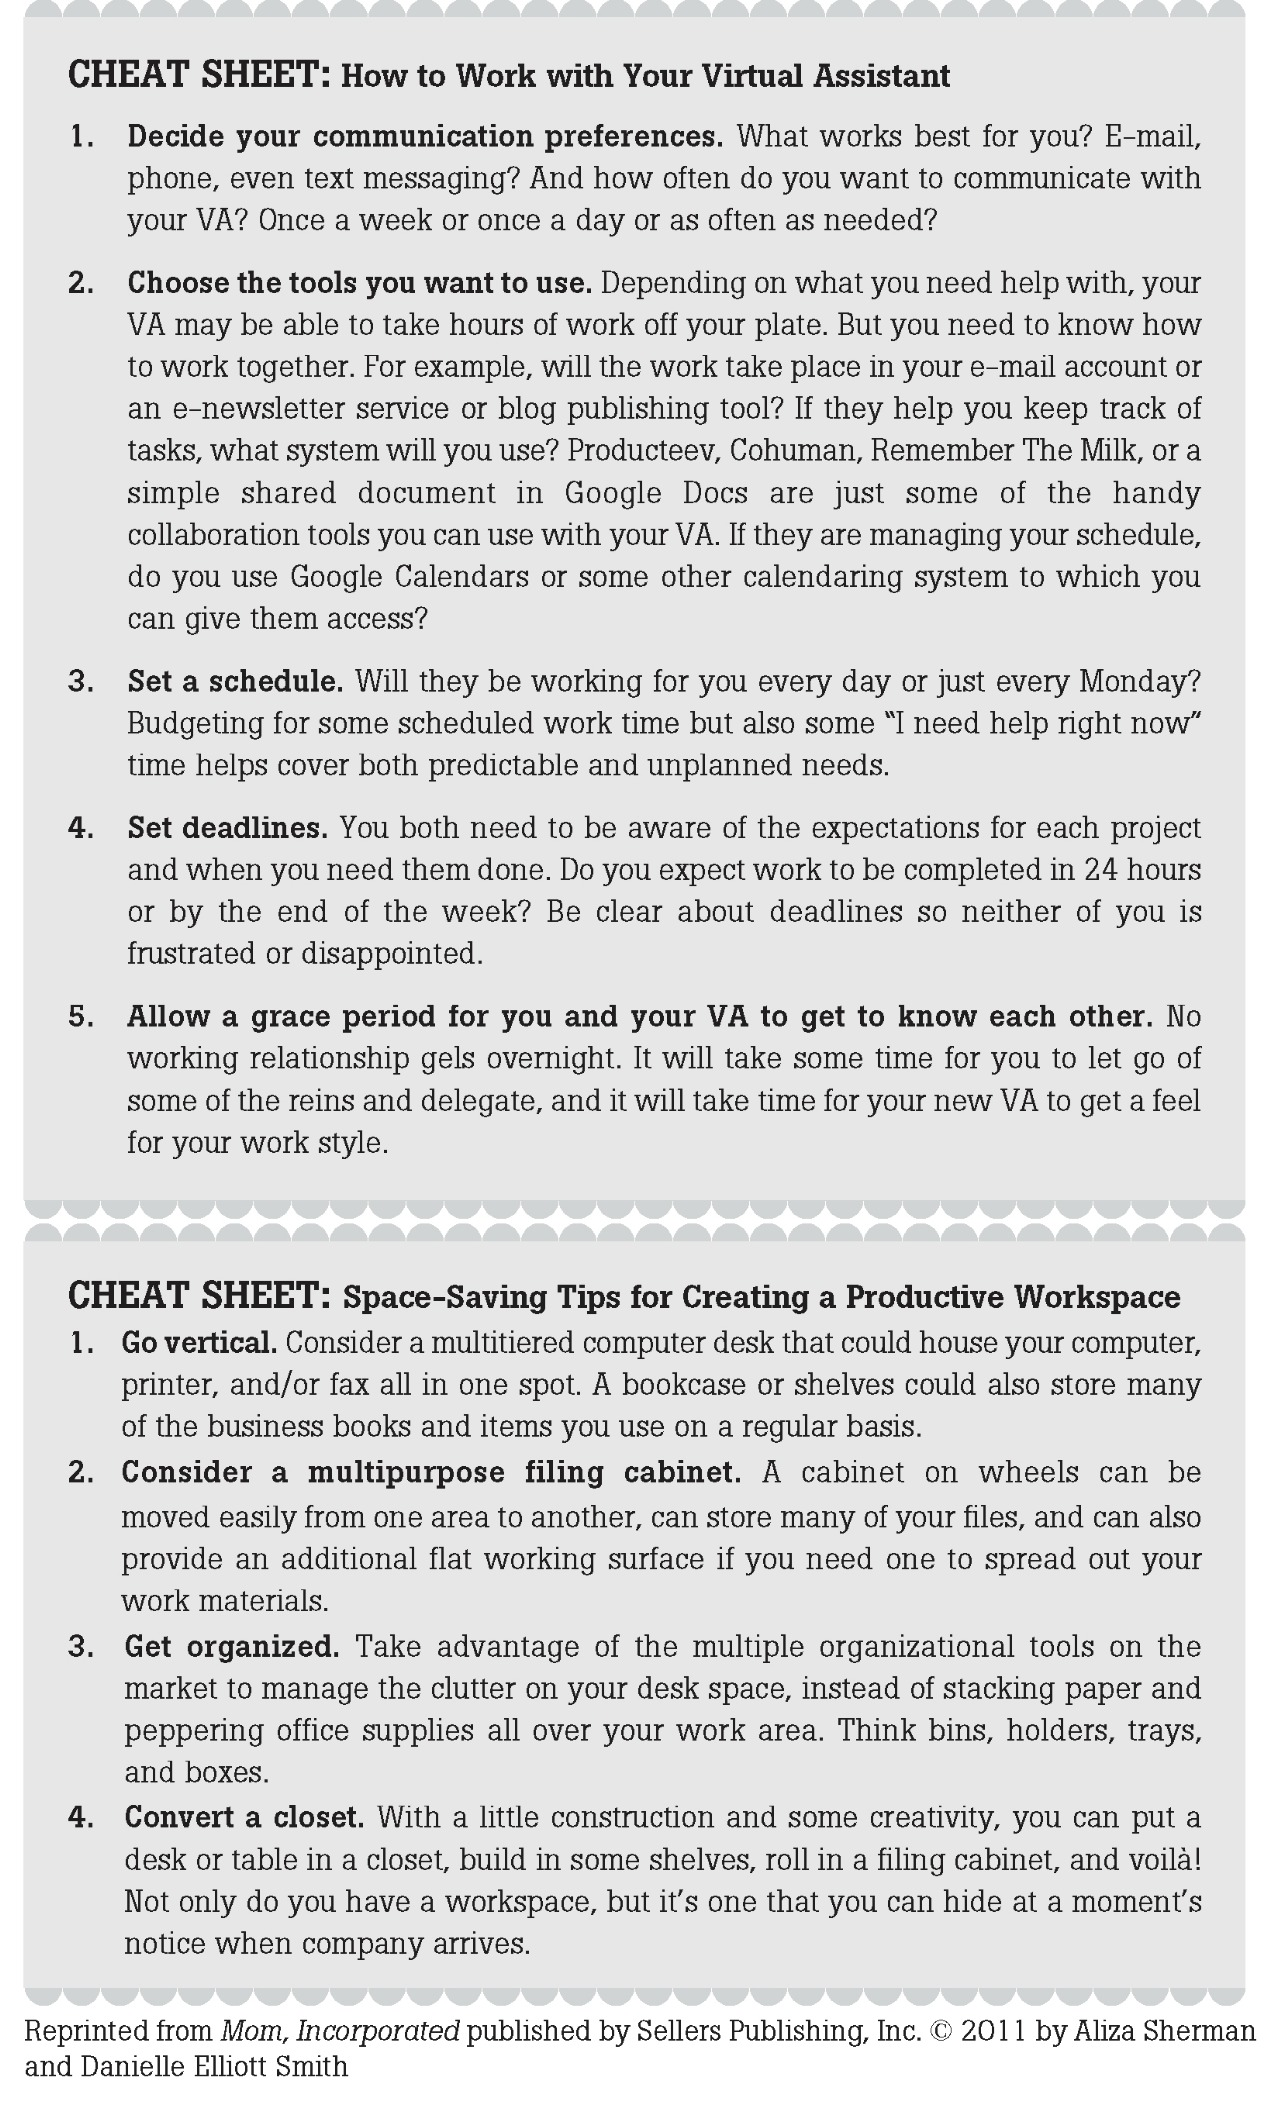 Worksheet No 9 Office Space And Family Conversation